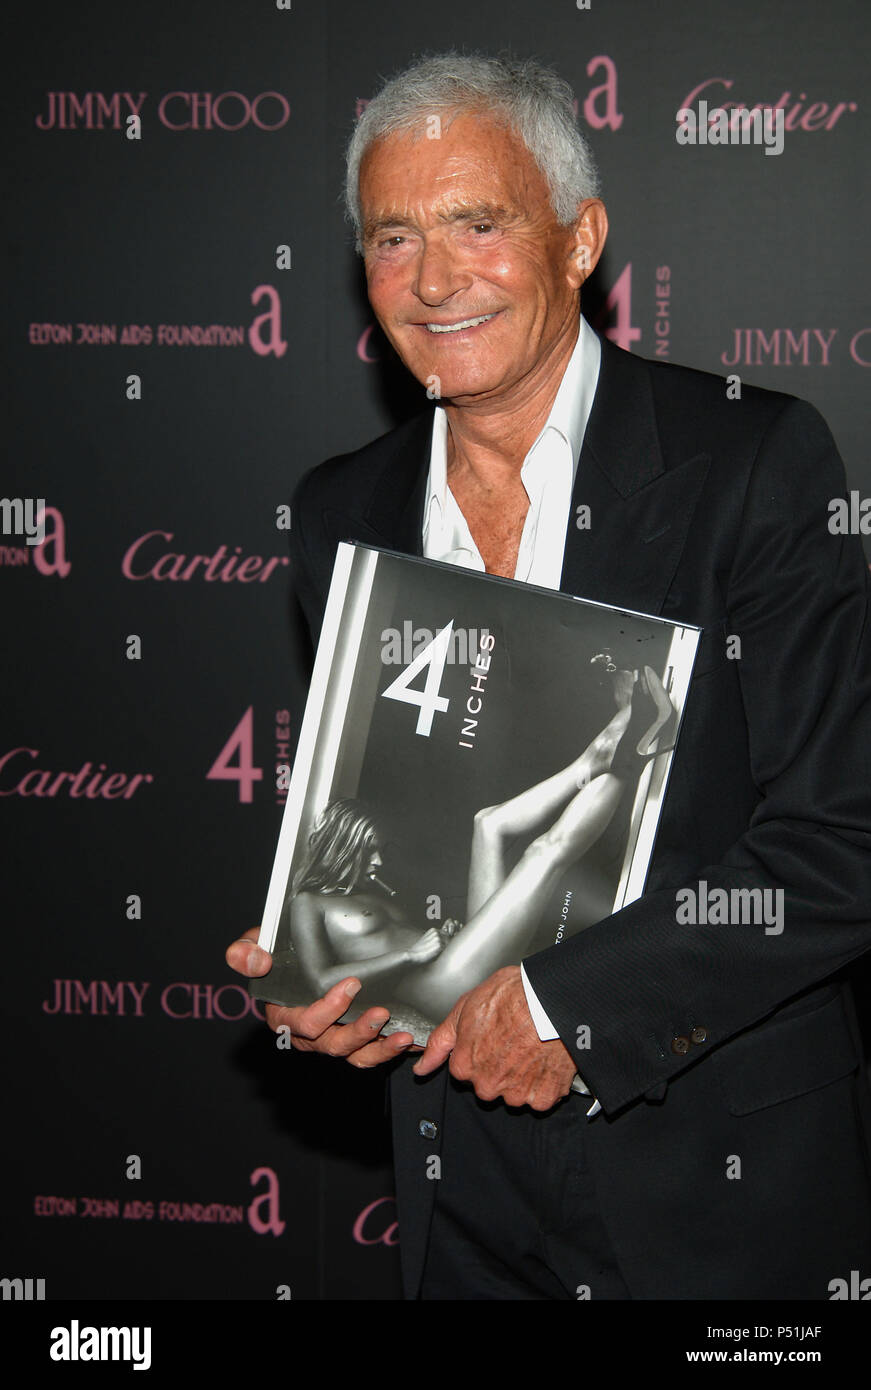 Vidal Sassoon arriving at the 4 Inches Party, A Project for Women about Women by Women to benefit the Elton Jones Foundation at Morton in Los Angeles. June 21, 2005. SassoonVidal003 Red Carpet Event, Vertical, USA, Film Industry, Celebrities,  Photography, Bestof, Arts Culture and Entertainment, Topix Celebrities fashion /  Vertical, Best of, Event in Hollywood Life - California,  Red Carpet and backstage, USA, Film Industry, Celebrities,  movie celebrities, TV celebrities, Music celebrities, Photography, Bestof, Arts Culture and Entertainment,  Topix, vertical, one person,, from the years , 2 - Stock Image